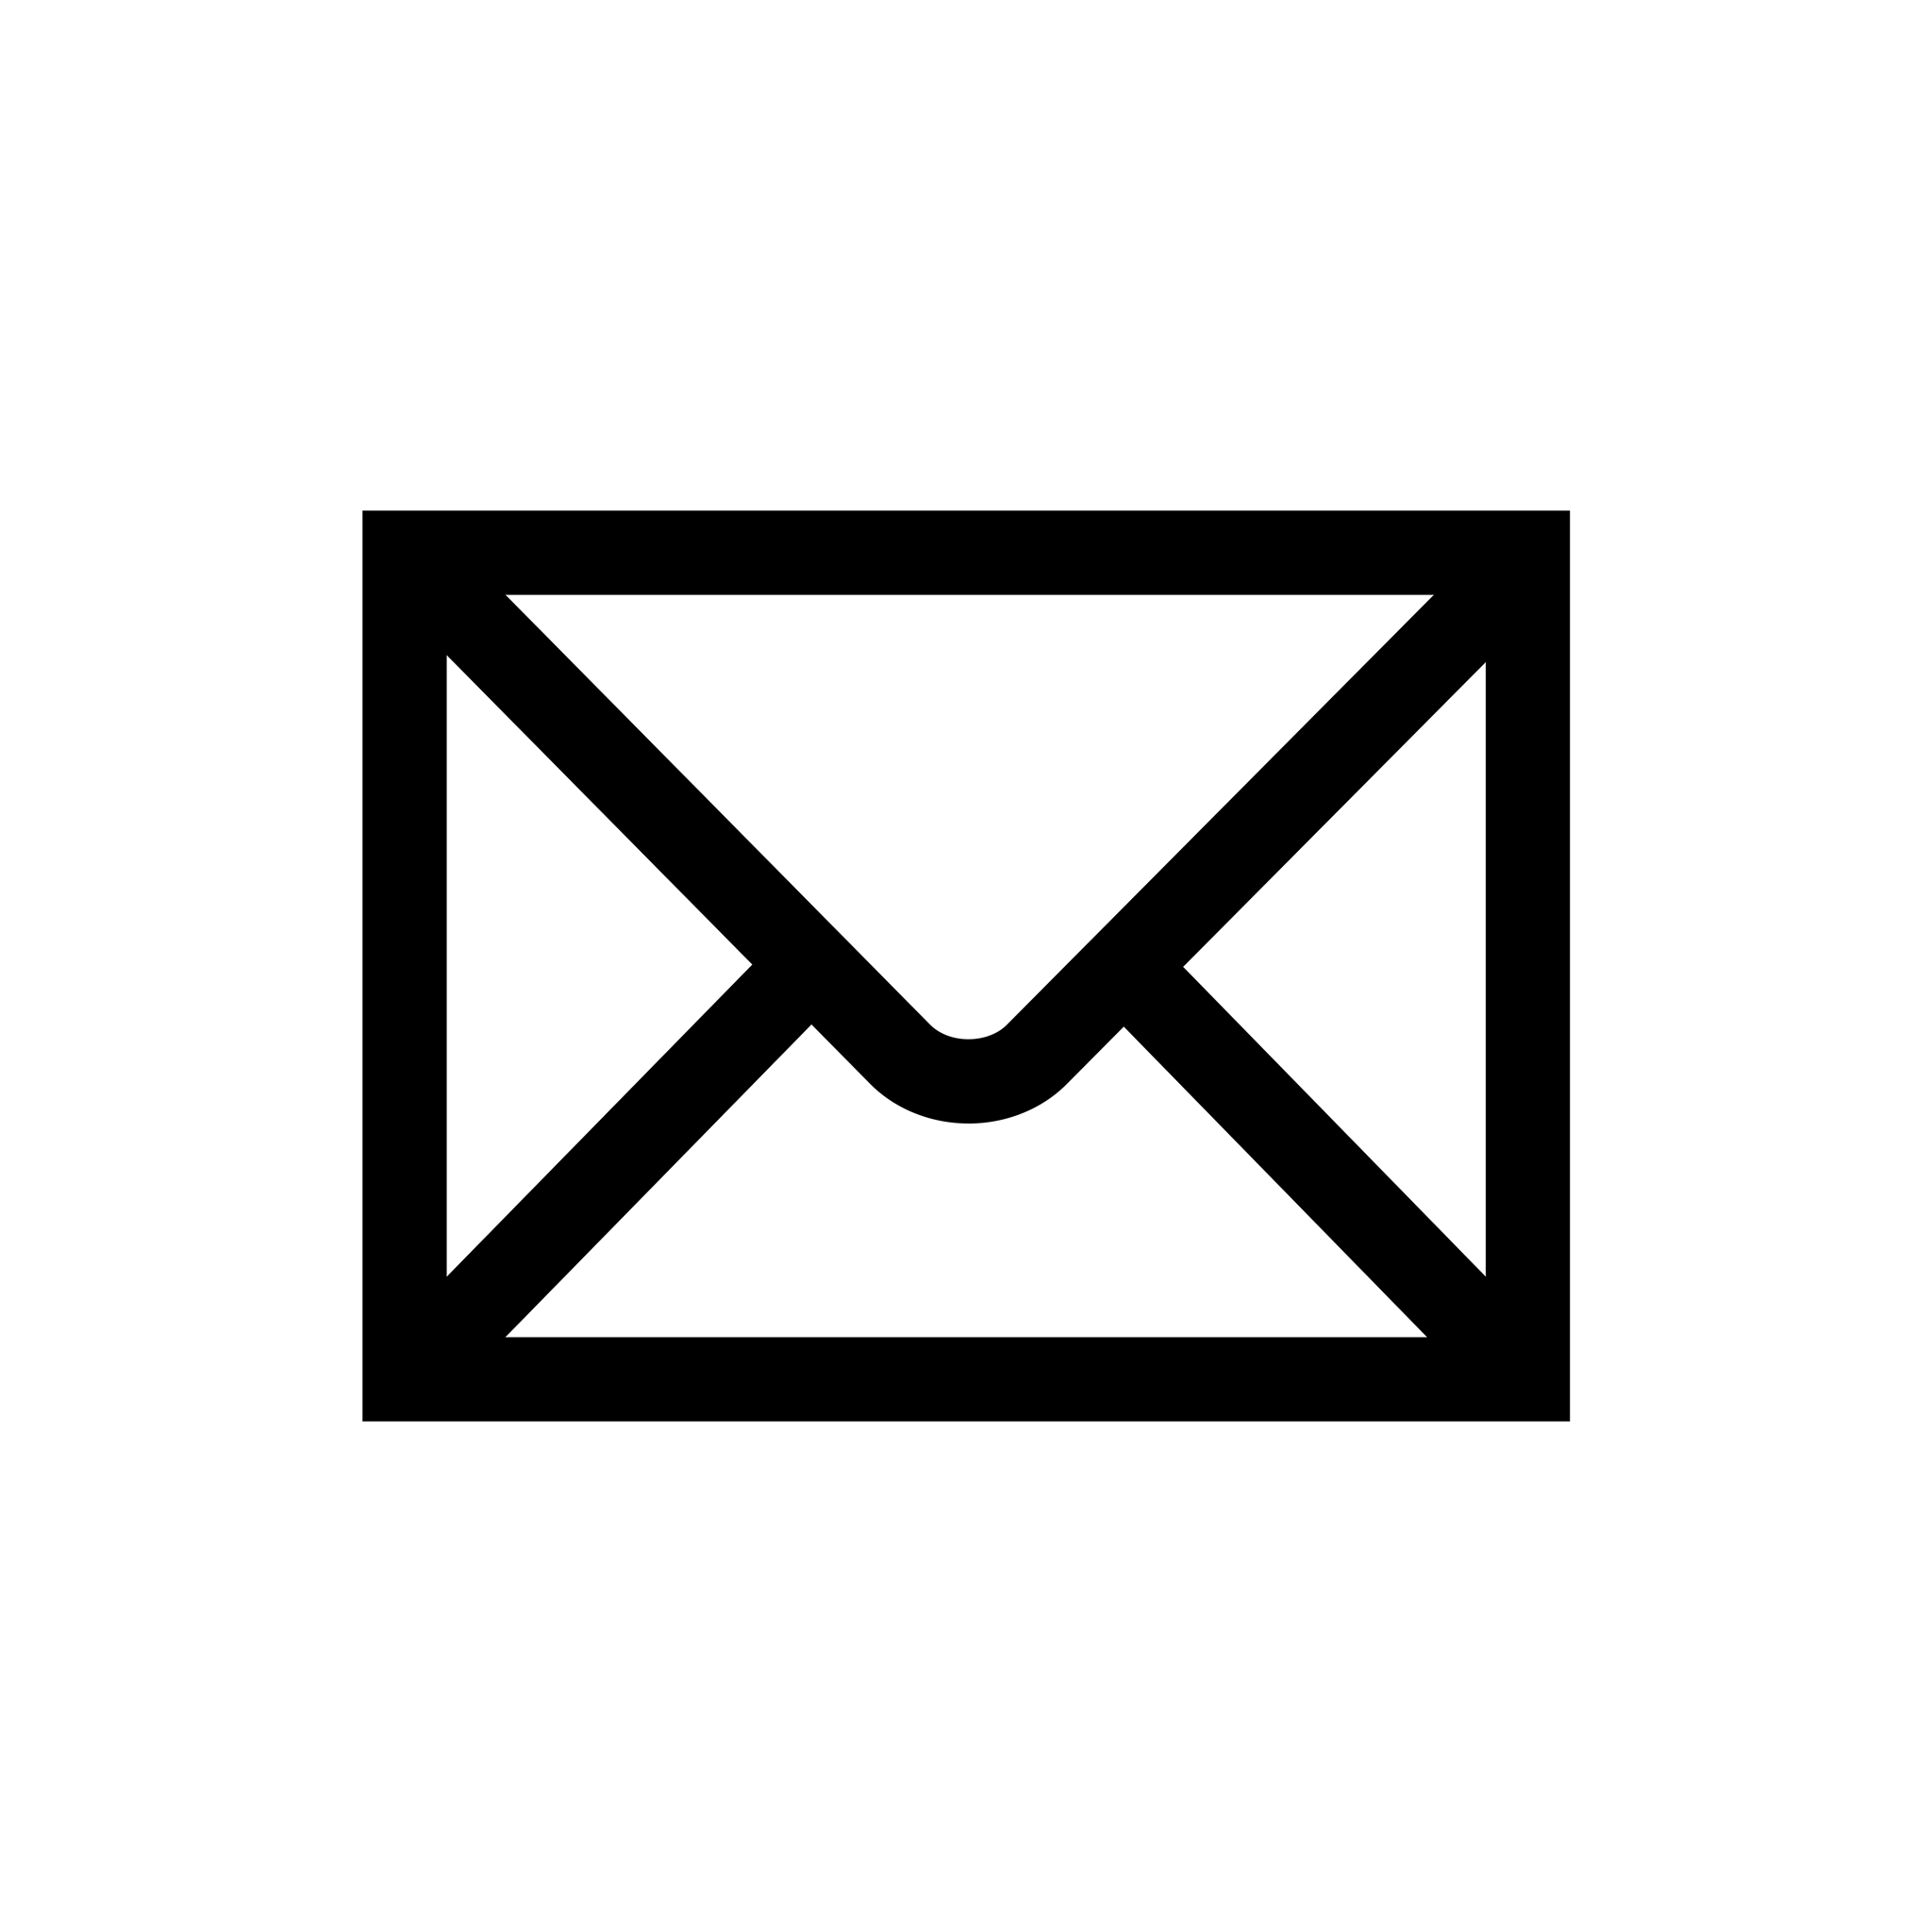 An email icon